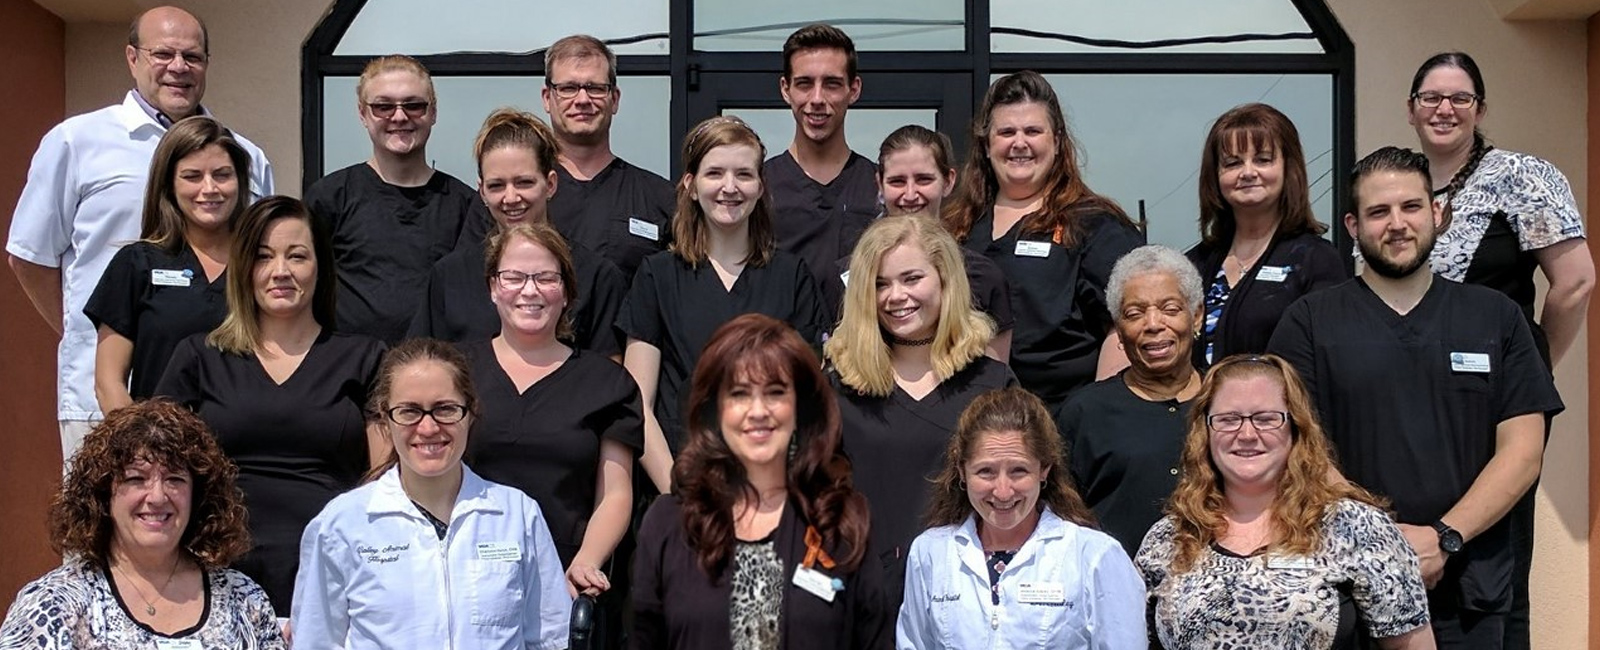 Team Picture of VCA Valley Animal Hospital